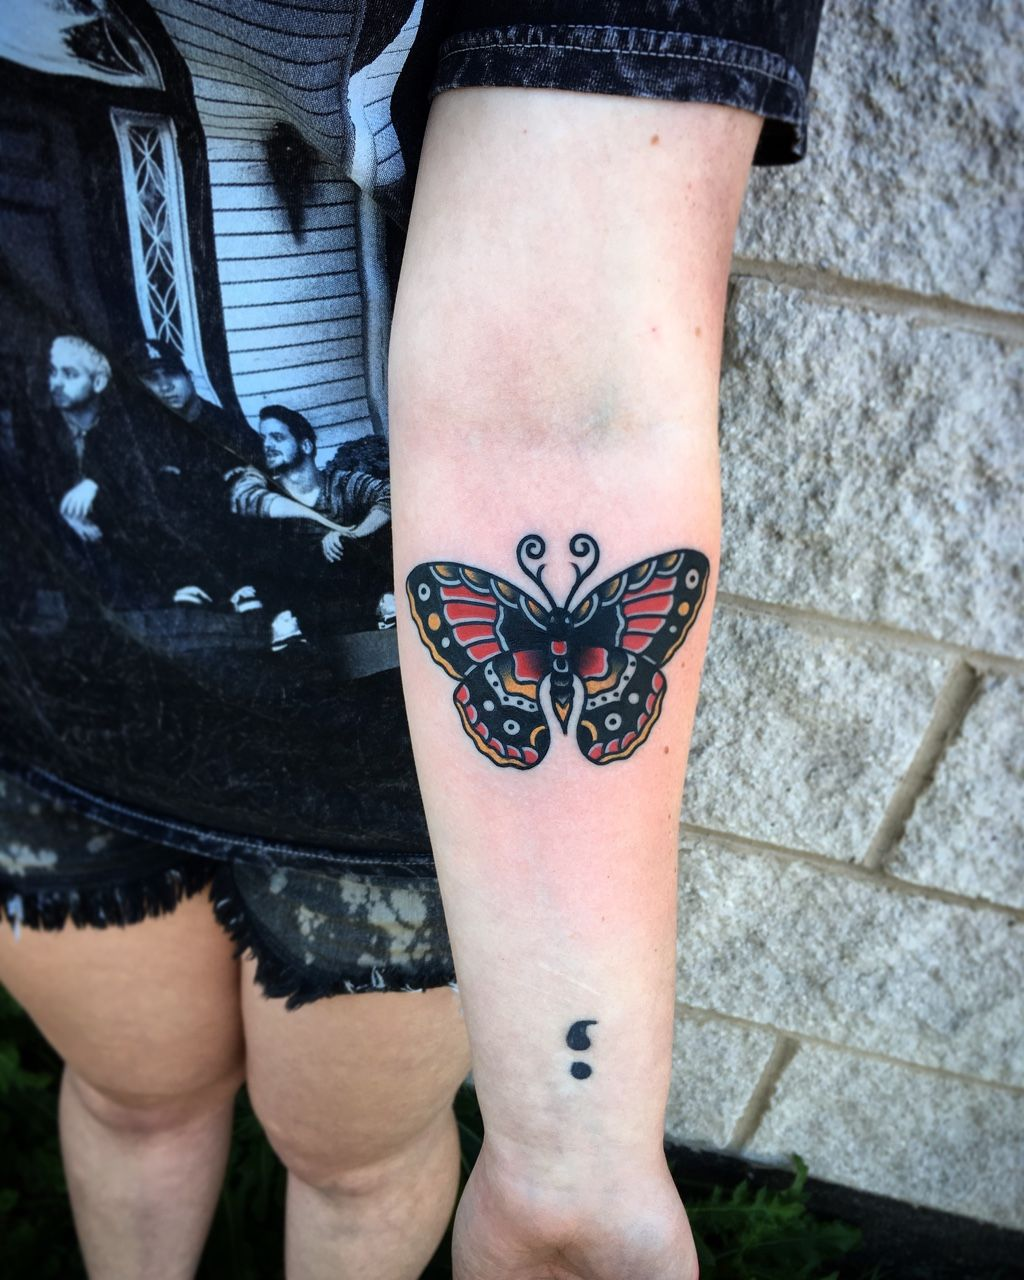 1337tattoos — Traditional butterfly done by Bill Dugan of